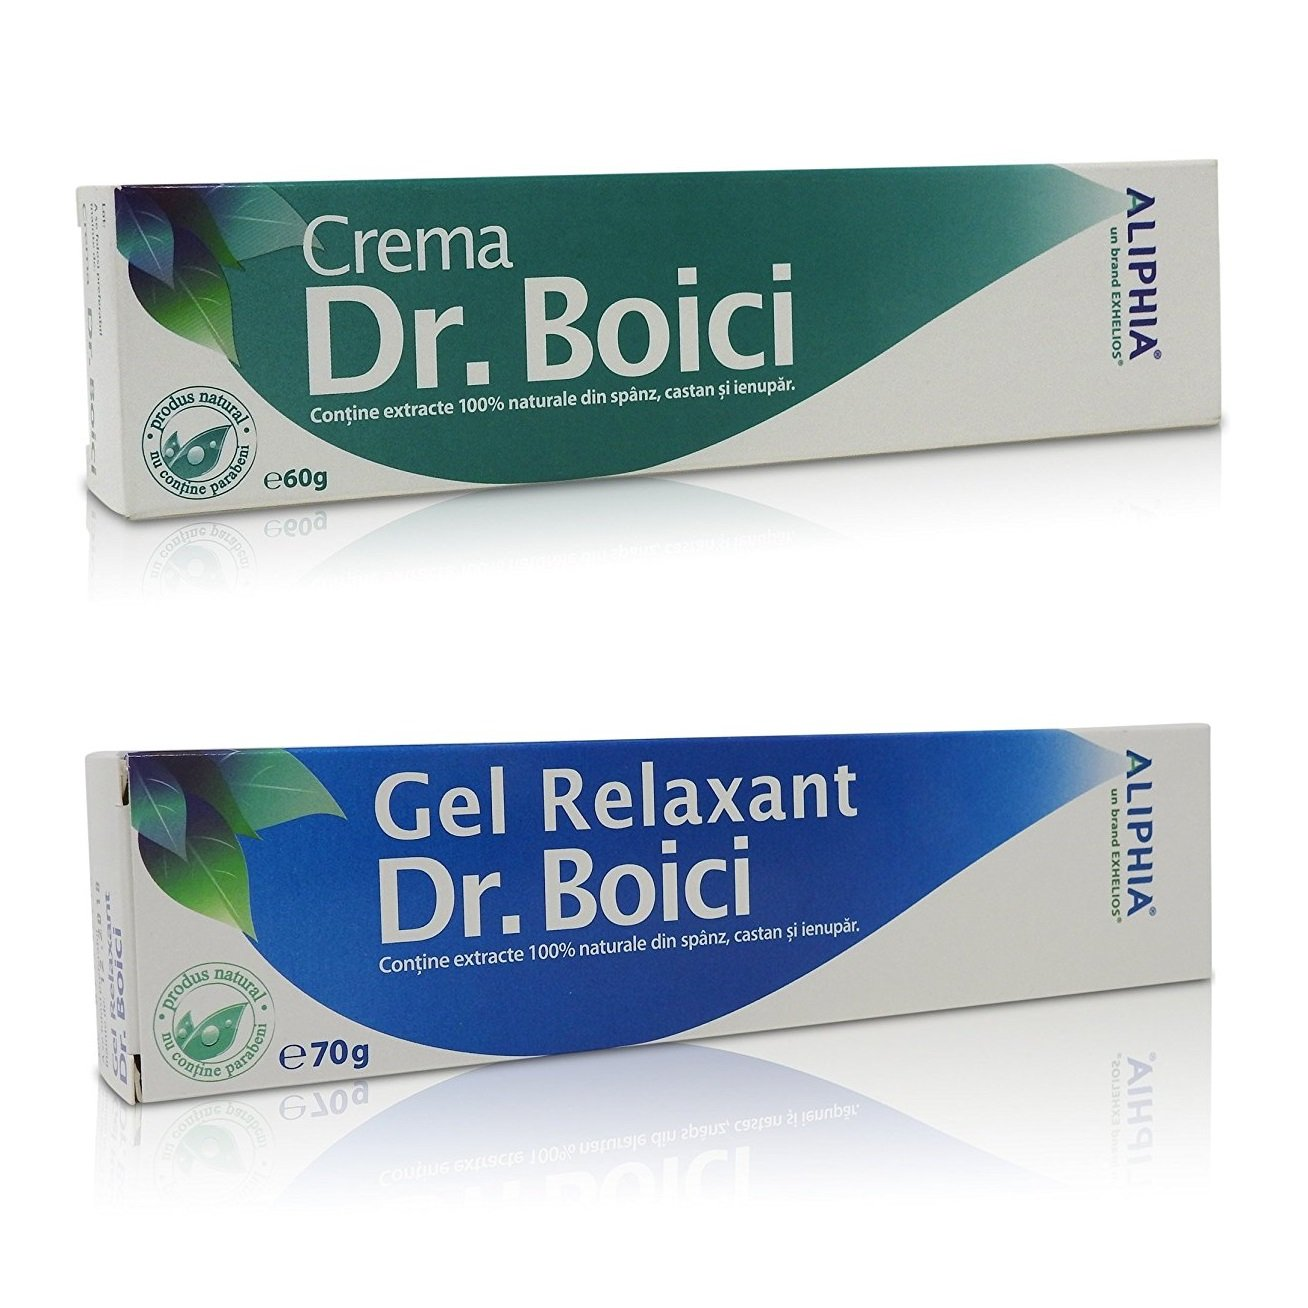 Doctor Boici Arthritis & Inflammation Pain Relief Gel – Fast Acting 100% Natural Extracts Inflammation & Arthritis Pain Relieving Gel – Arthritis Pain Relief, Anti Inflammatory Pain Relief Muscle & Joint Pain Relief, Sciatica & Lower Back P